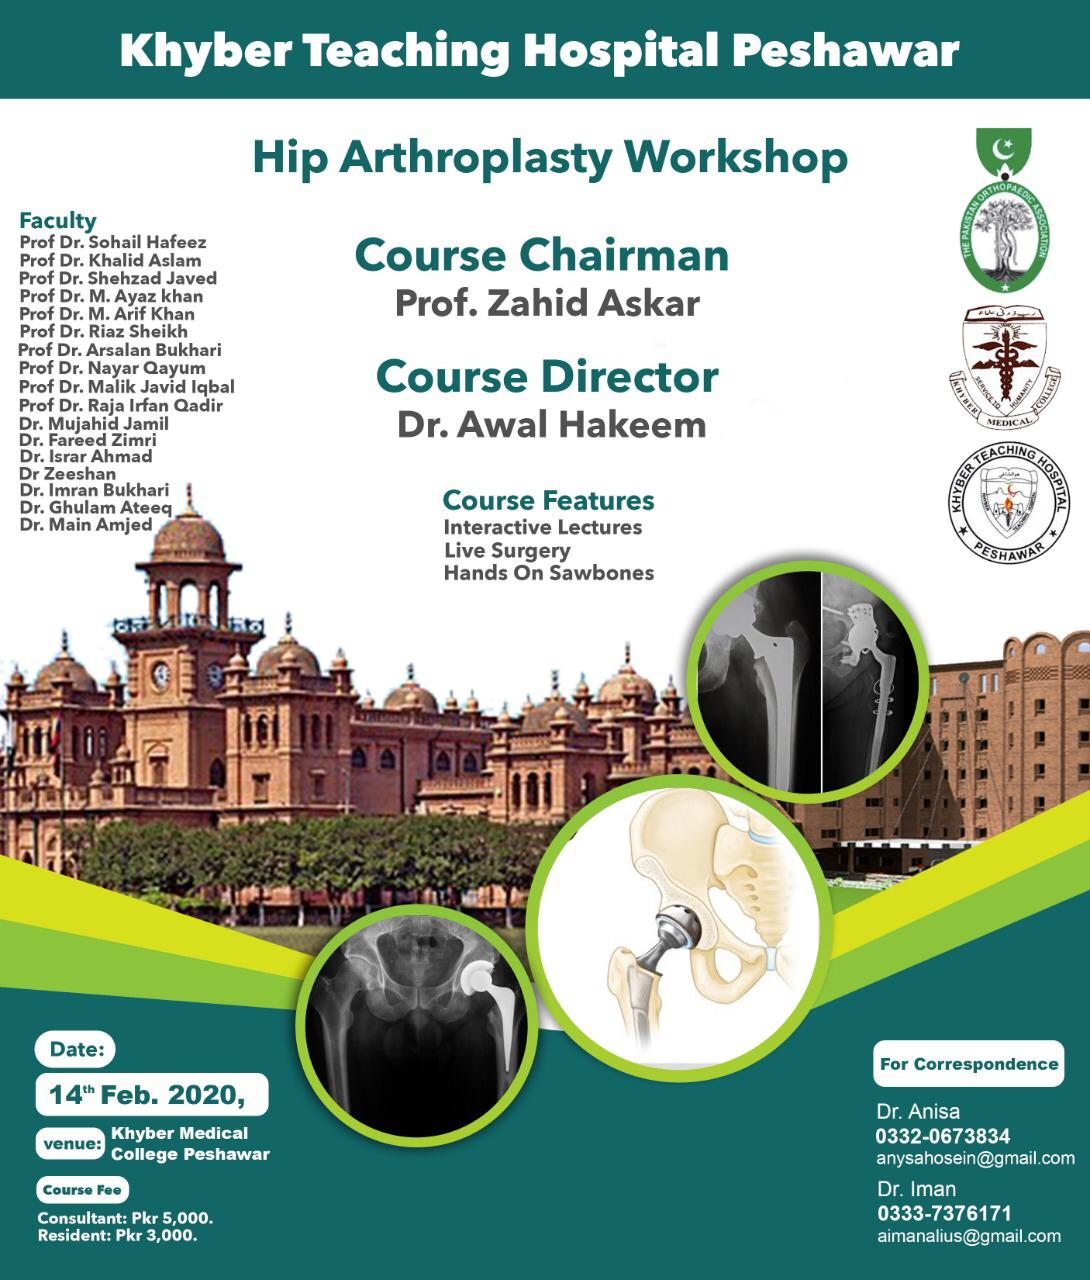 Hip Arthroplasty Workshop